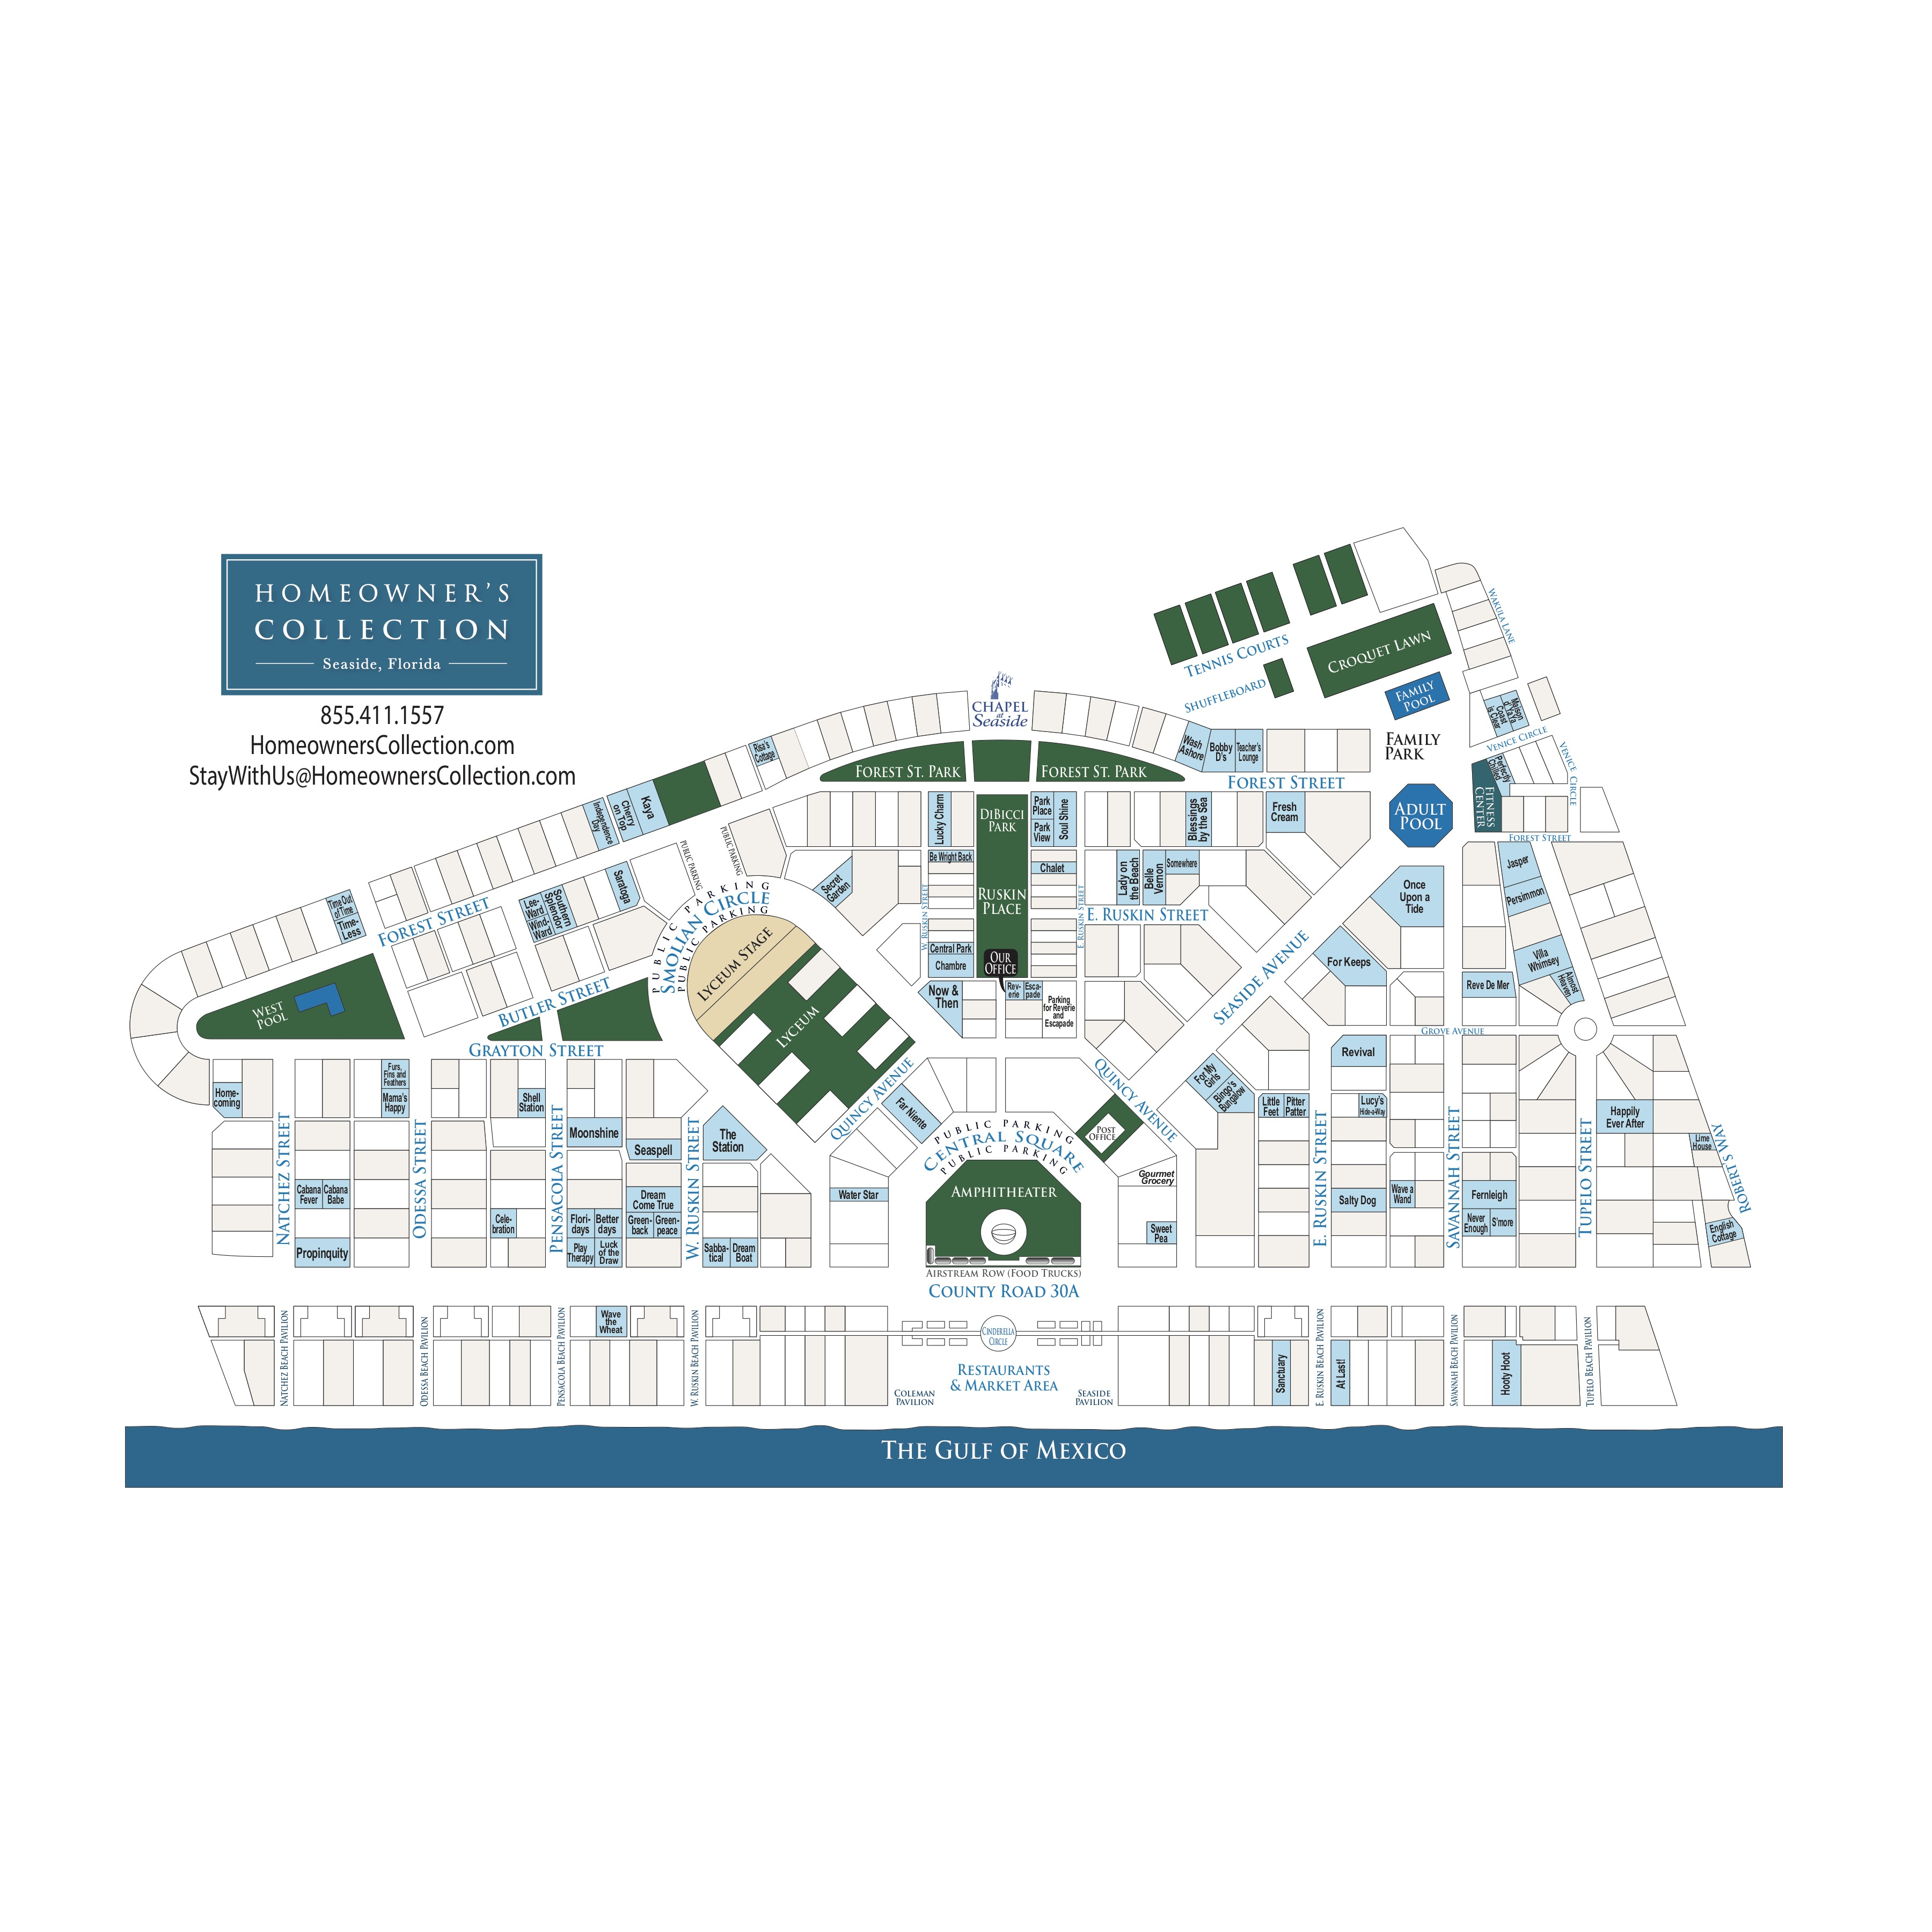 Seaside Florida Cottage Map - Where Is Seaside Florida On The Map